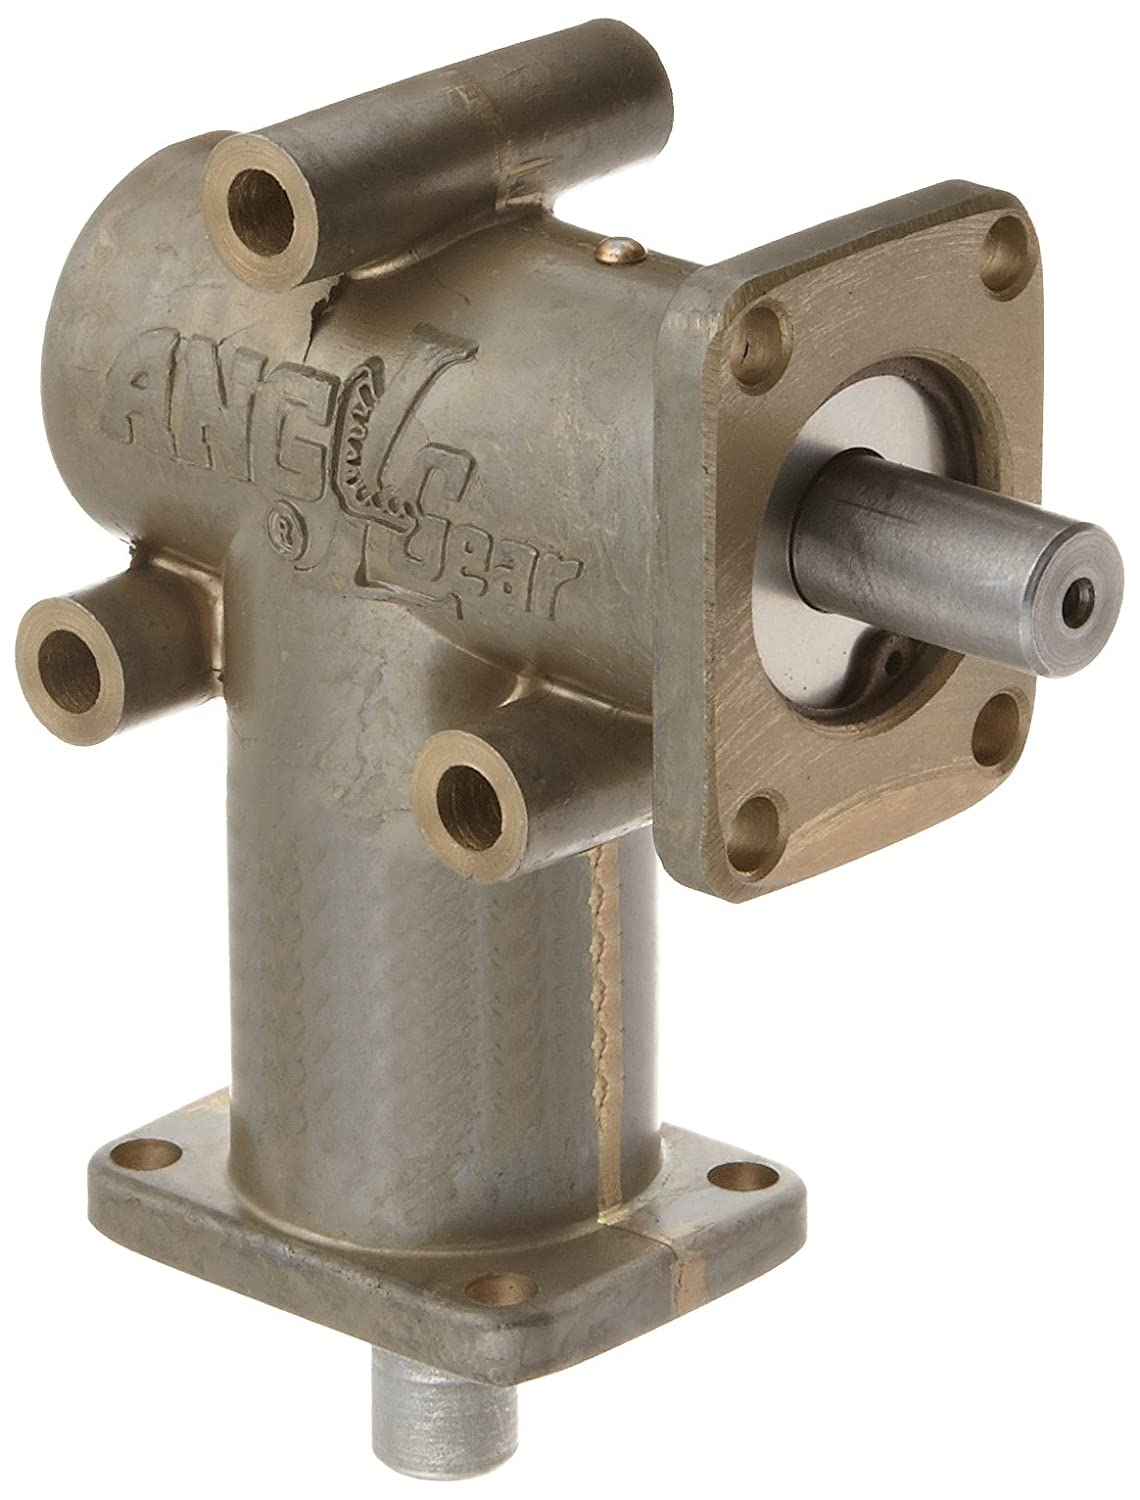 Andantex R3000-2 Anglgear Right Angle Bevel Gear Drive, Universal Mounting, Single Output Shaft, 2 Flanges, Inch, 3/8' Shaft Diameter, 2:1 Ratio.11 Hp at 1750rpm Gearheads & Speed Reducers